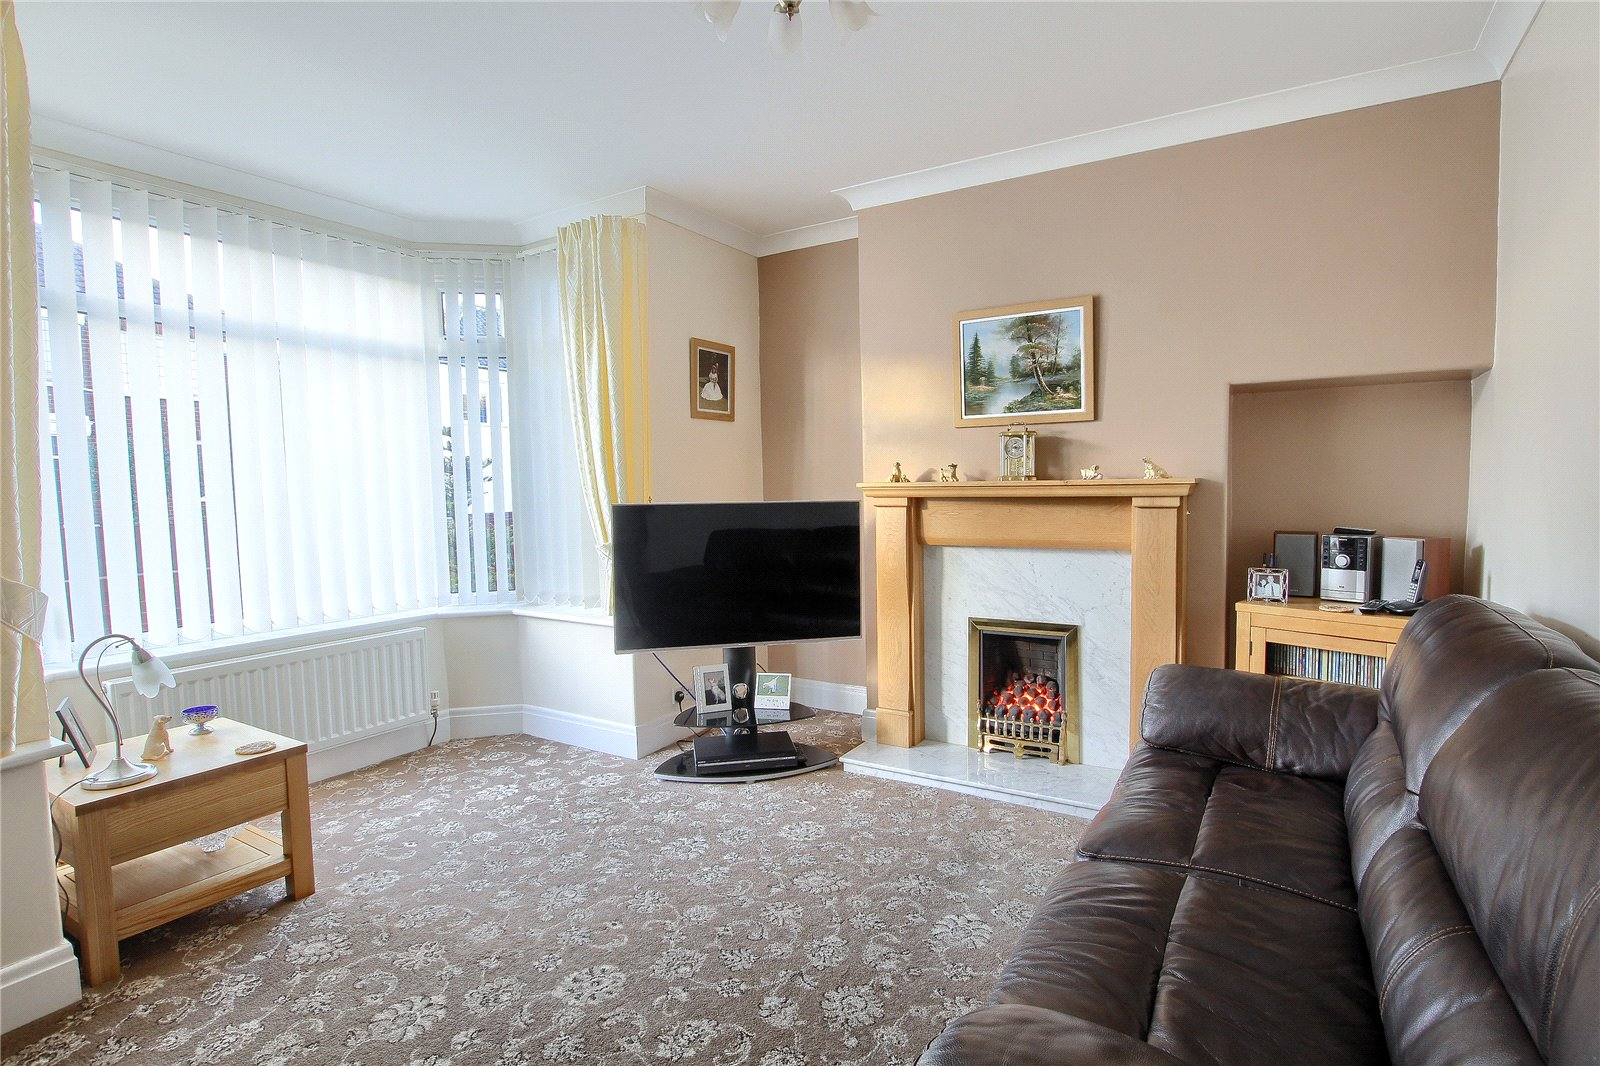 3 bed house for sale in Benton Road, Tollesby  - Property Image 2